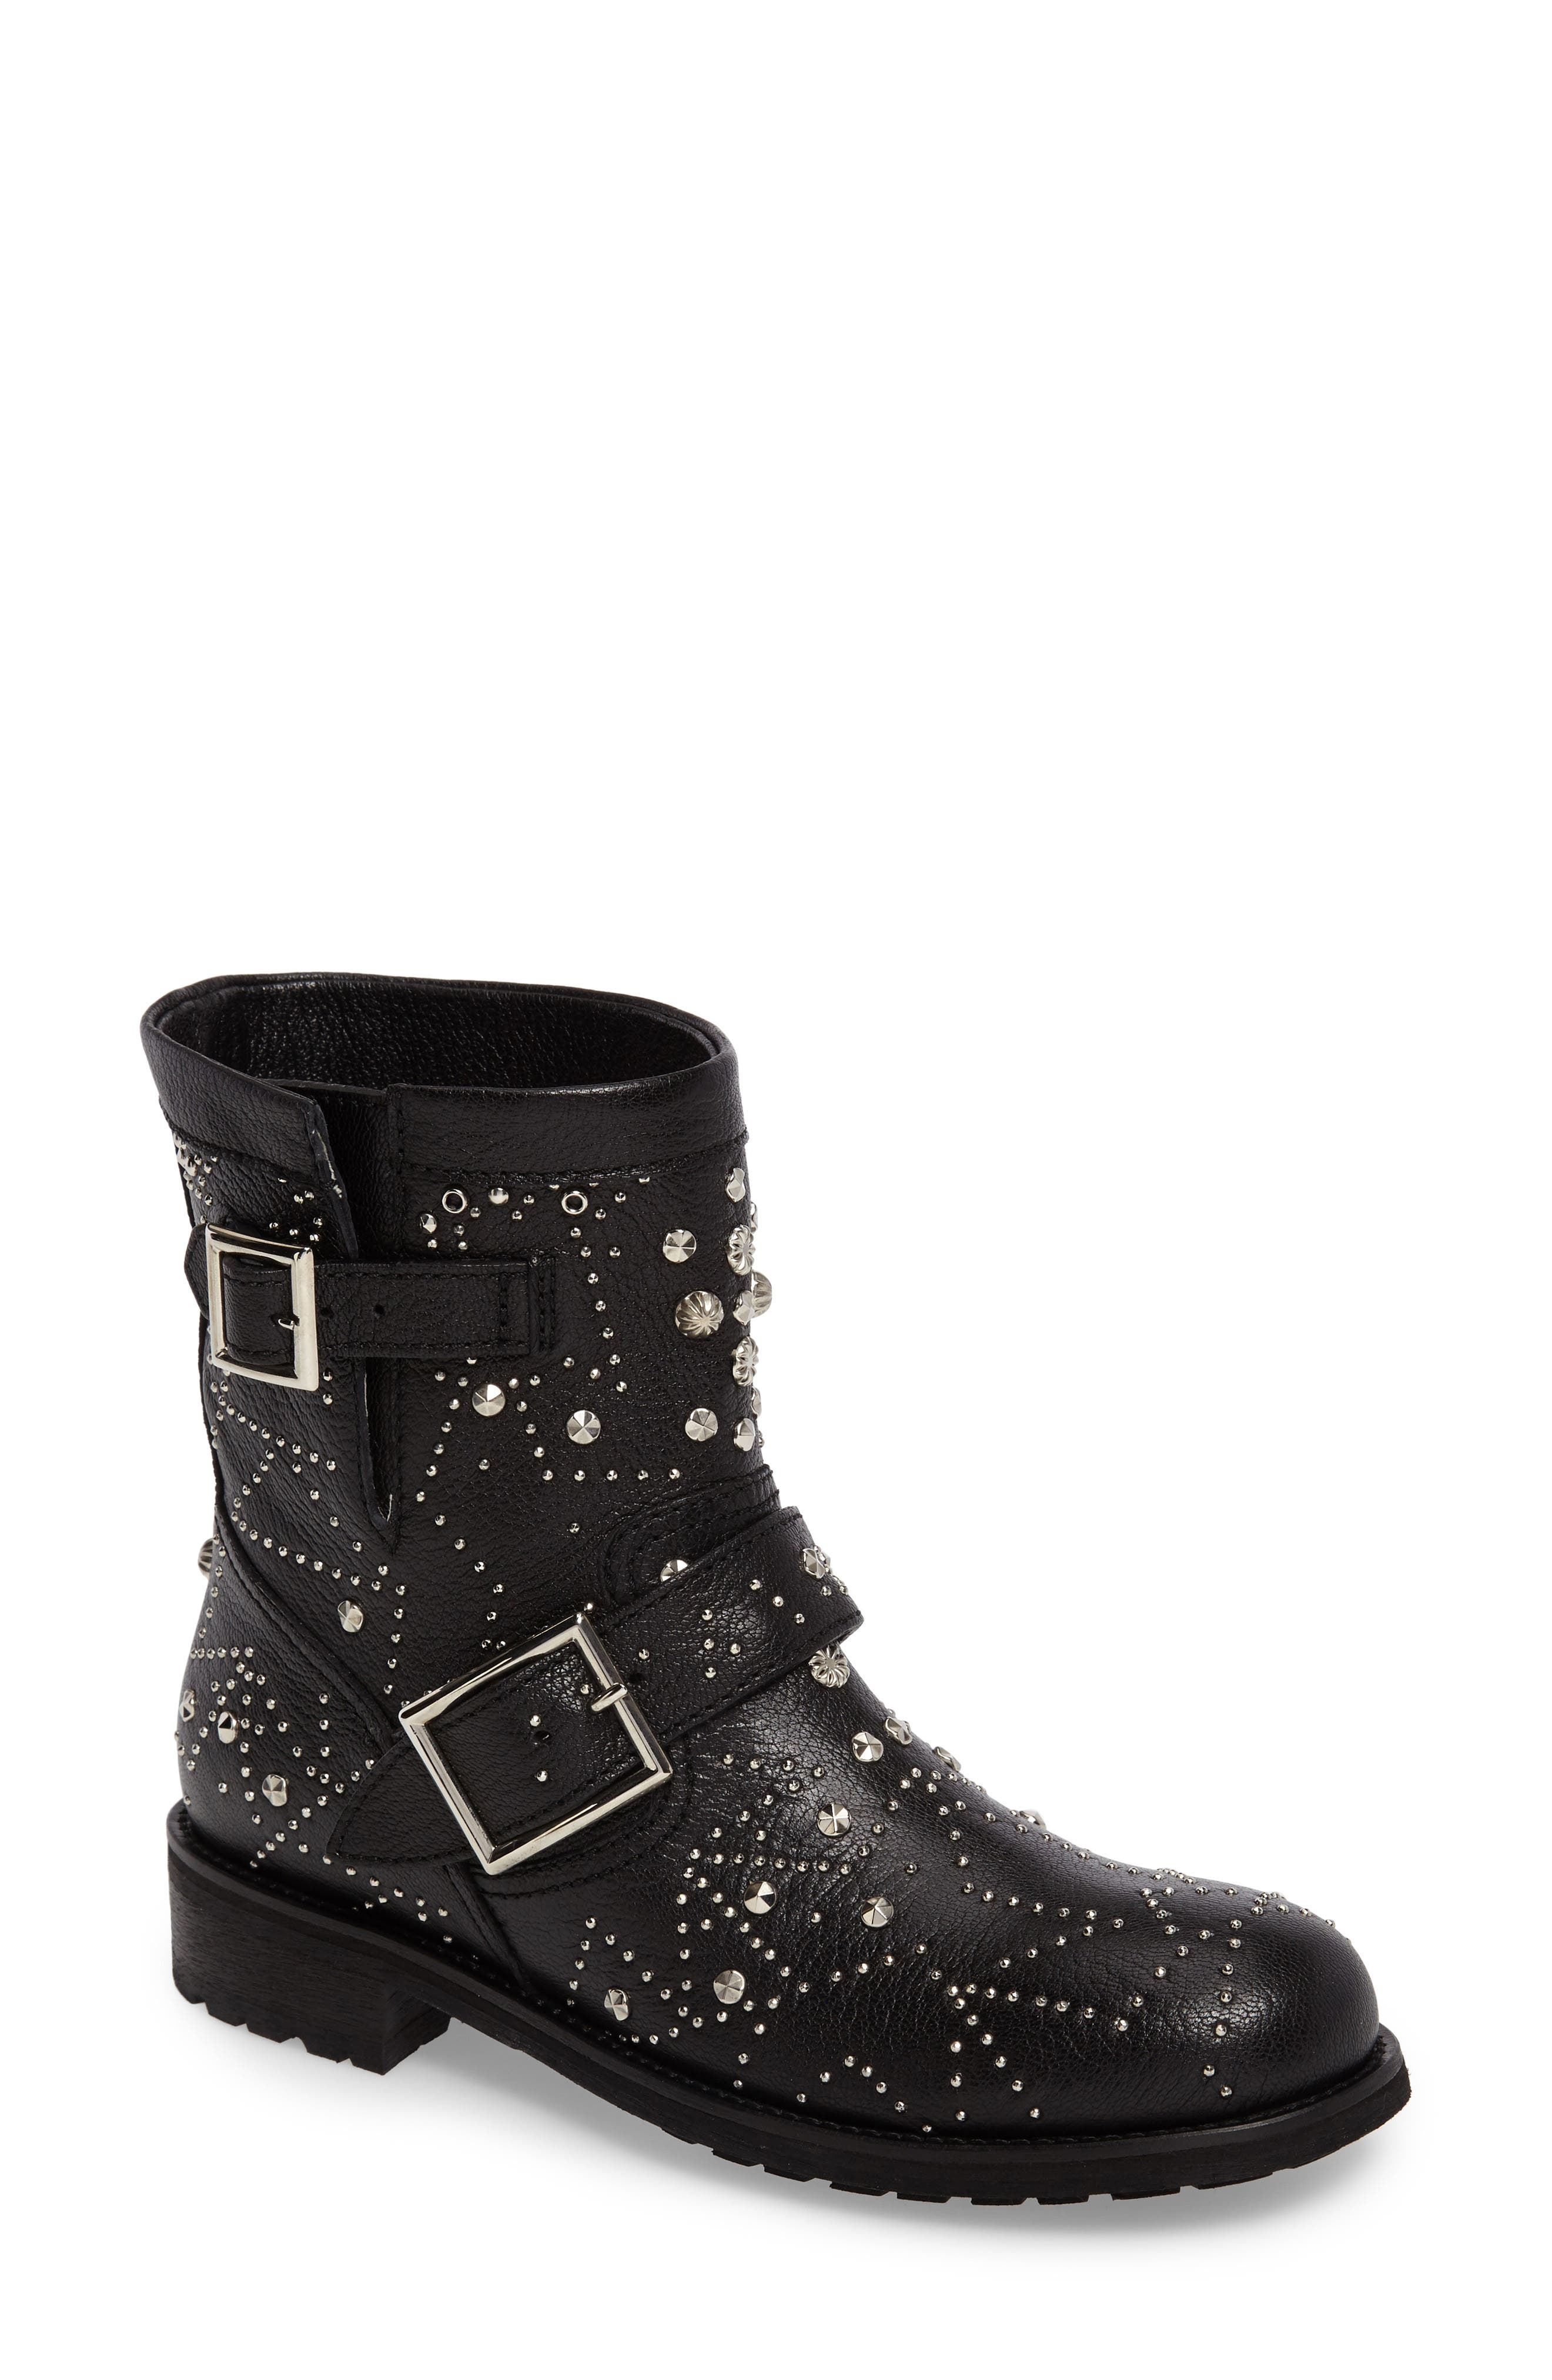 Alternate Image 1 Selected - Jimmy Choo Youth Combat Boot (Women)